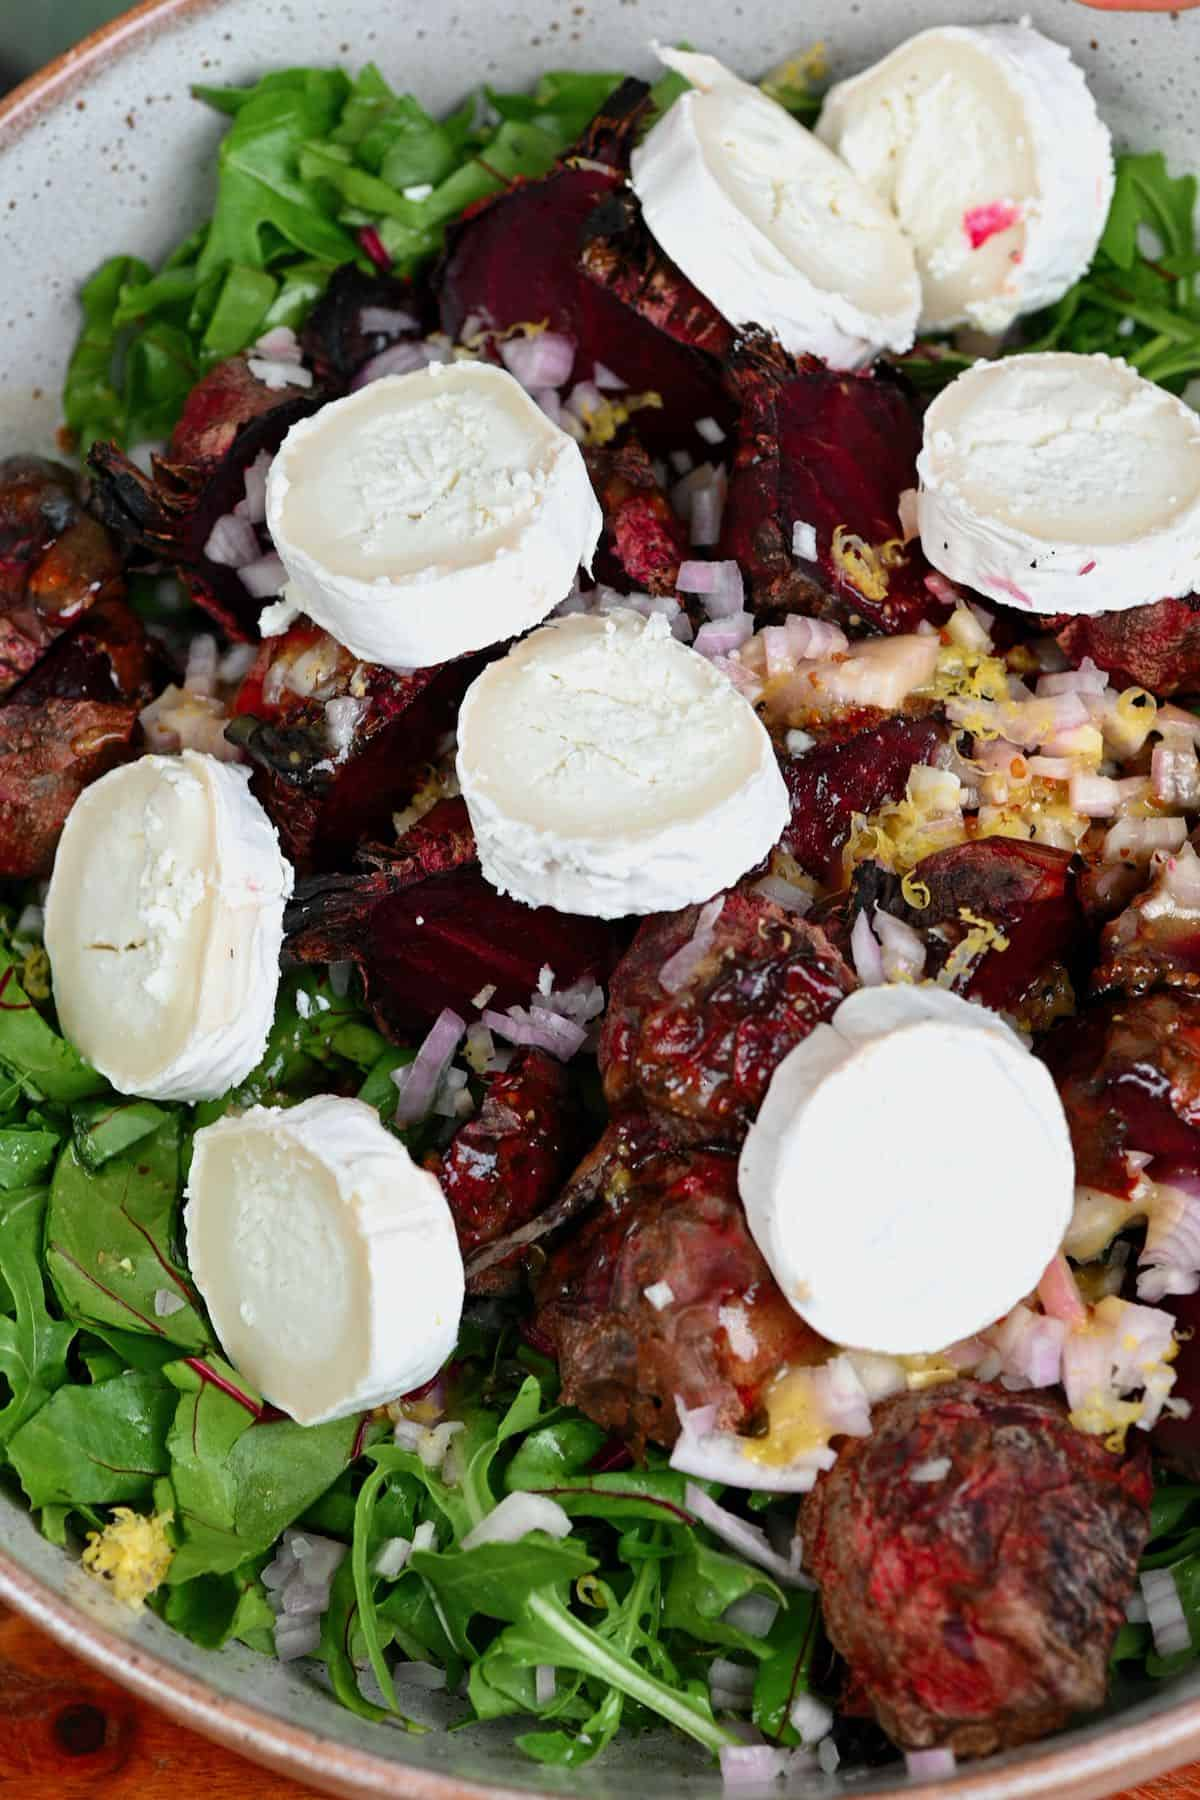 Roasted beet salad with goat cheese in a bowl